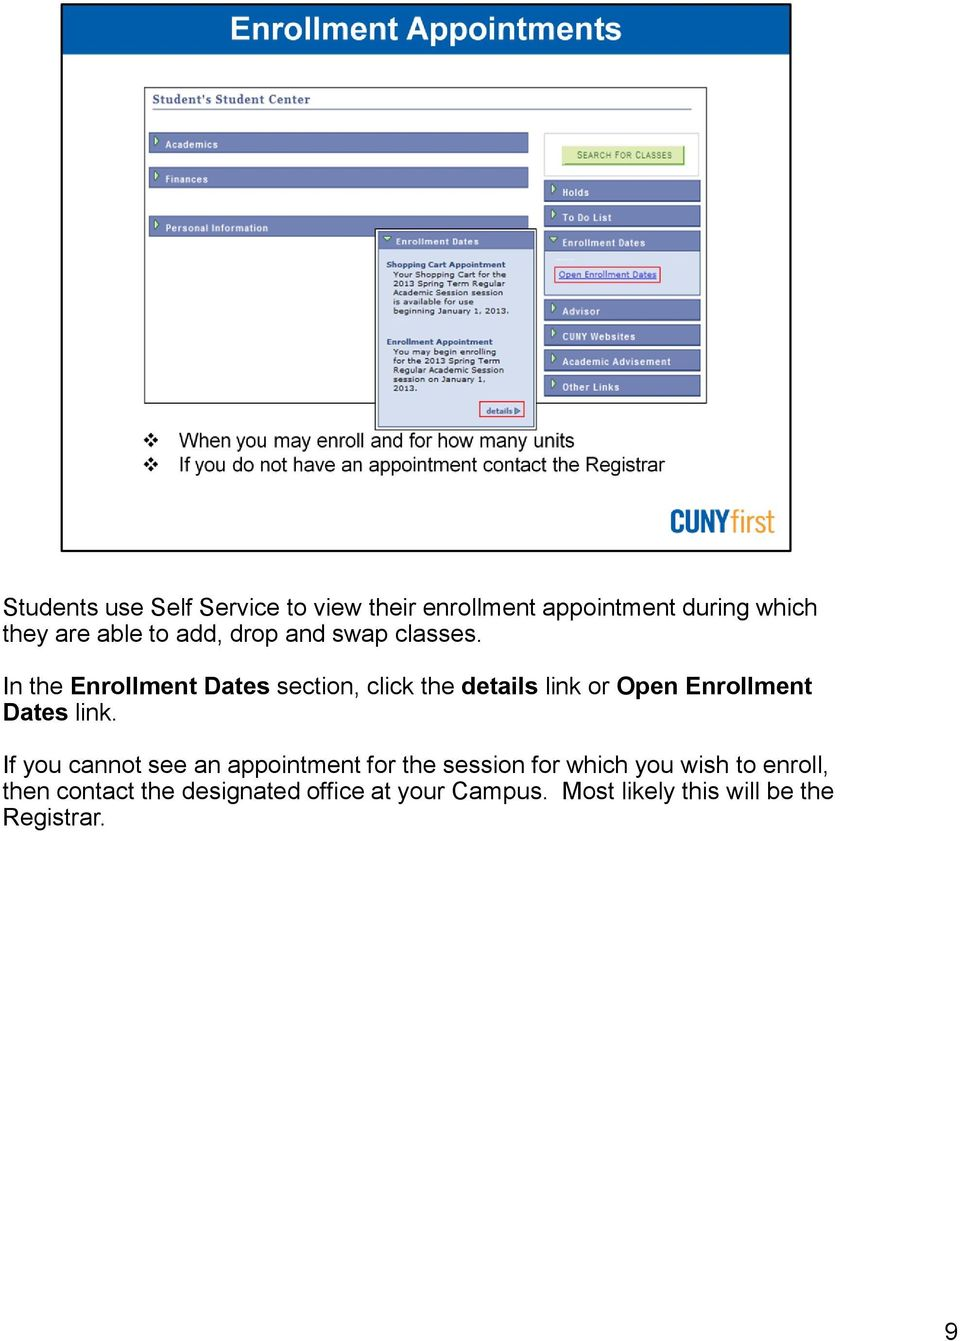 In the Enrollment Dates section, click the details link or Open Enrollment Dates link.